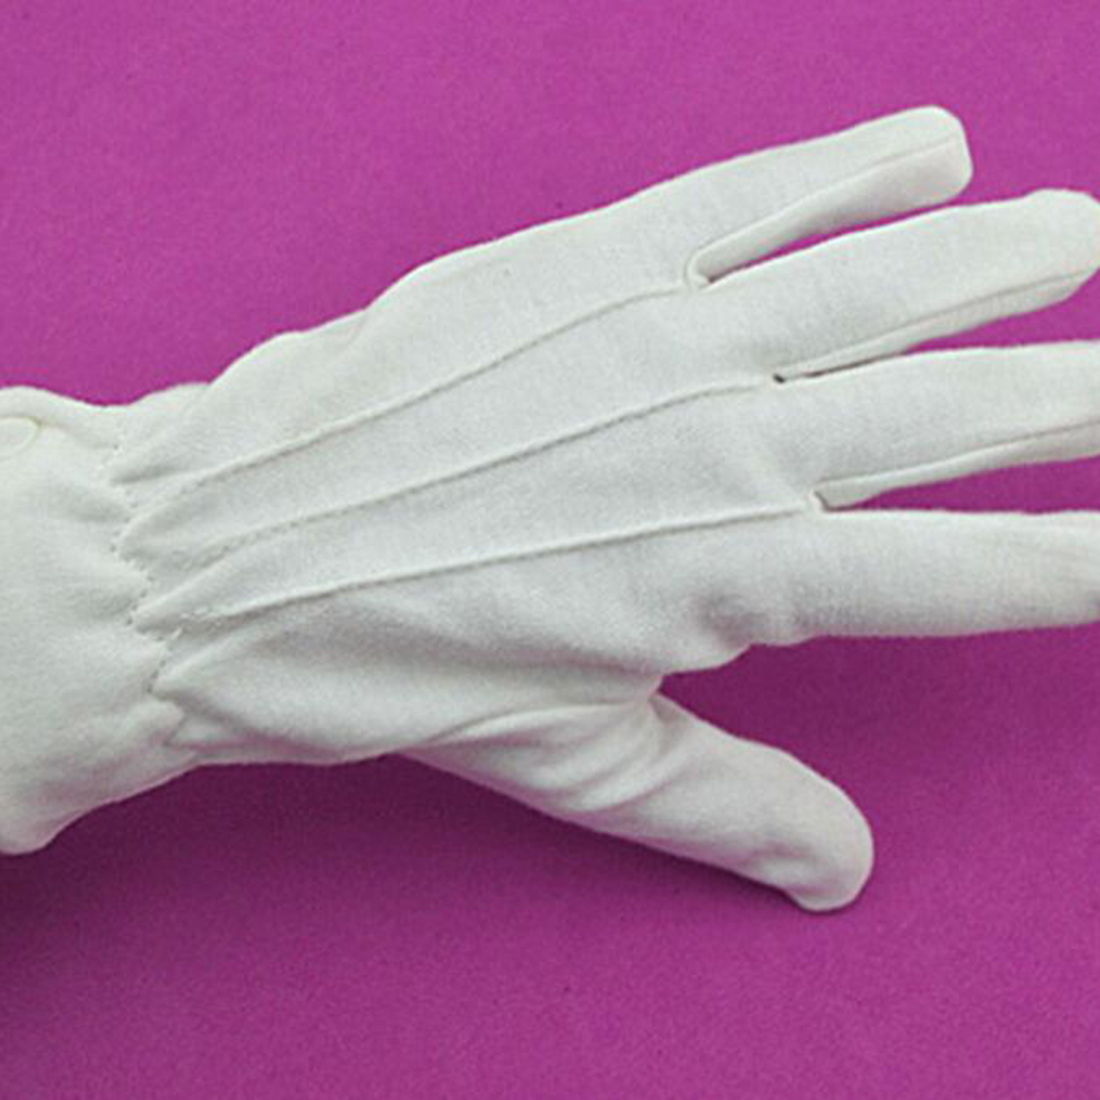 New White Cotton Gloves Formal Work Uniform Catering Band Magician Parades Inspection Five-fingers Men's Work Gloves